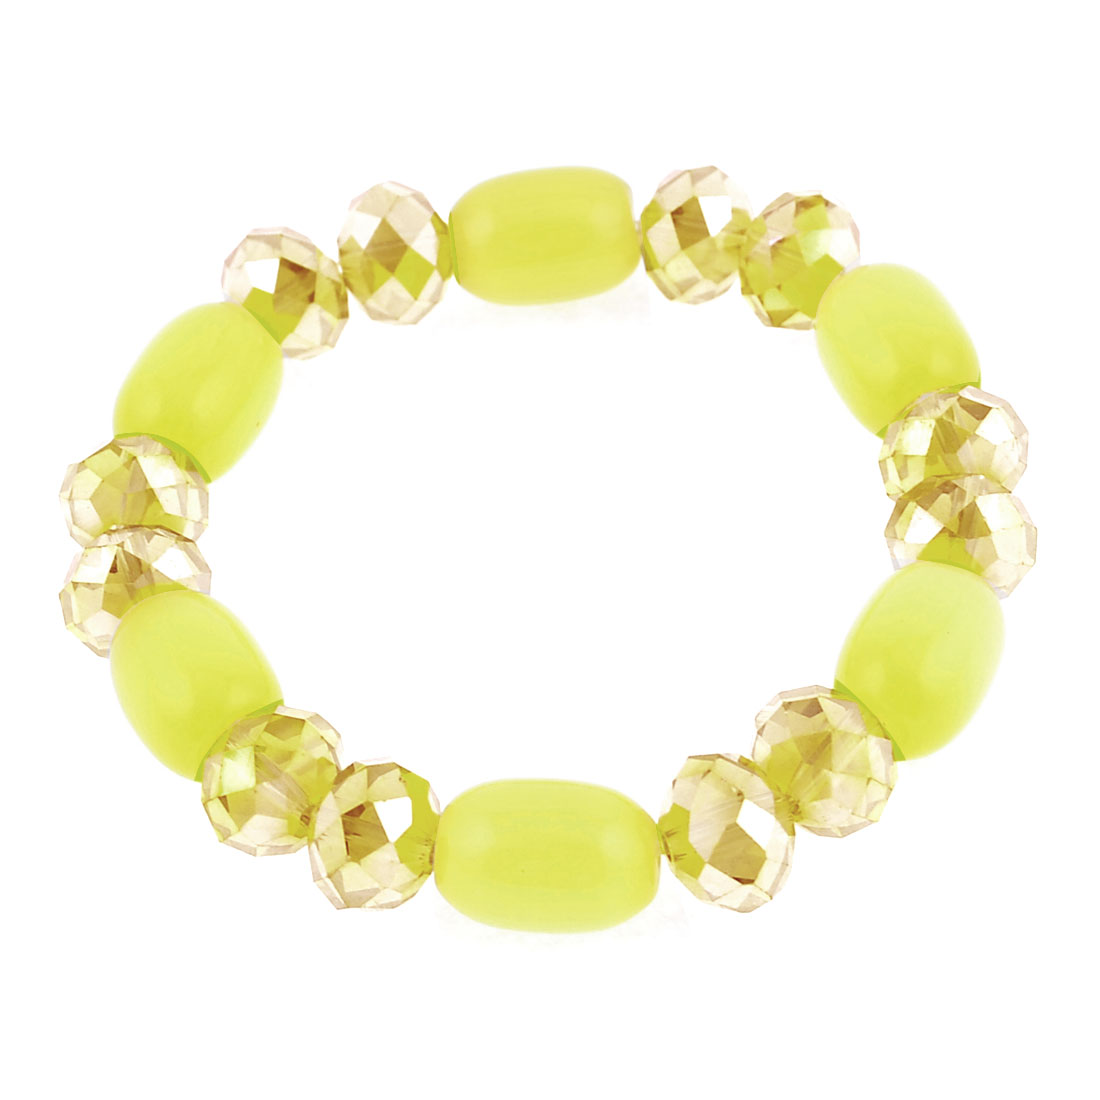 6mm Dia Plastic Crystal Beads Stretchy Bracelet Bangle Yellow for Lady